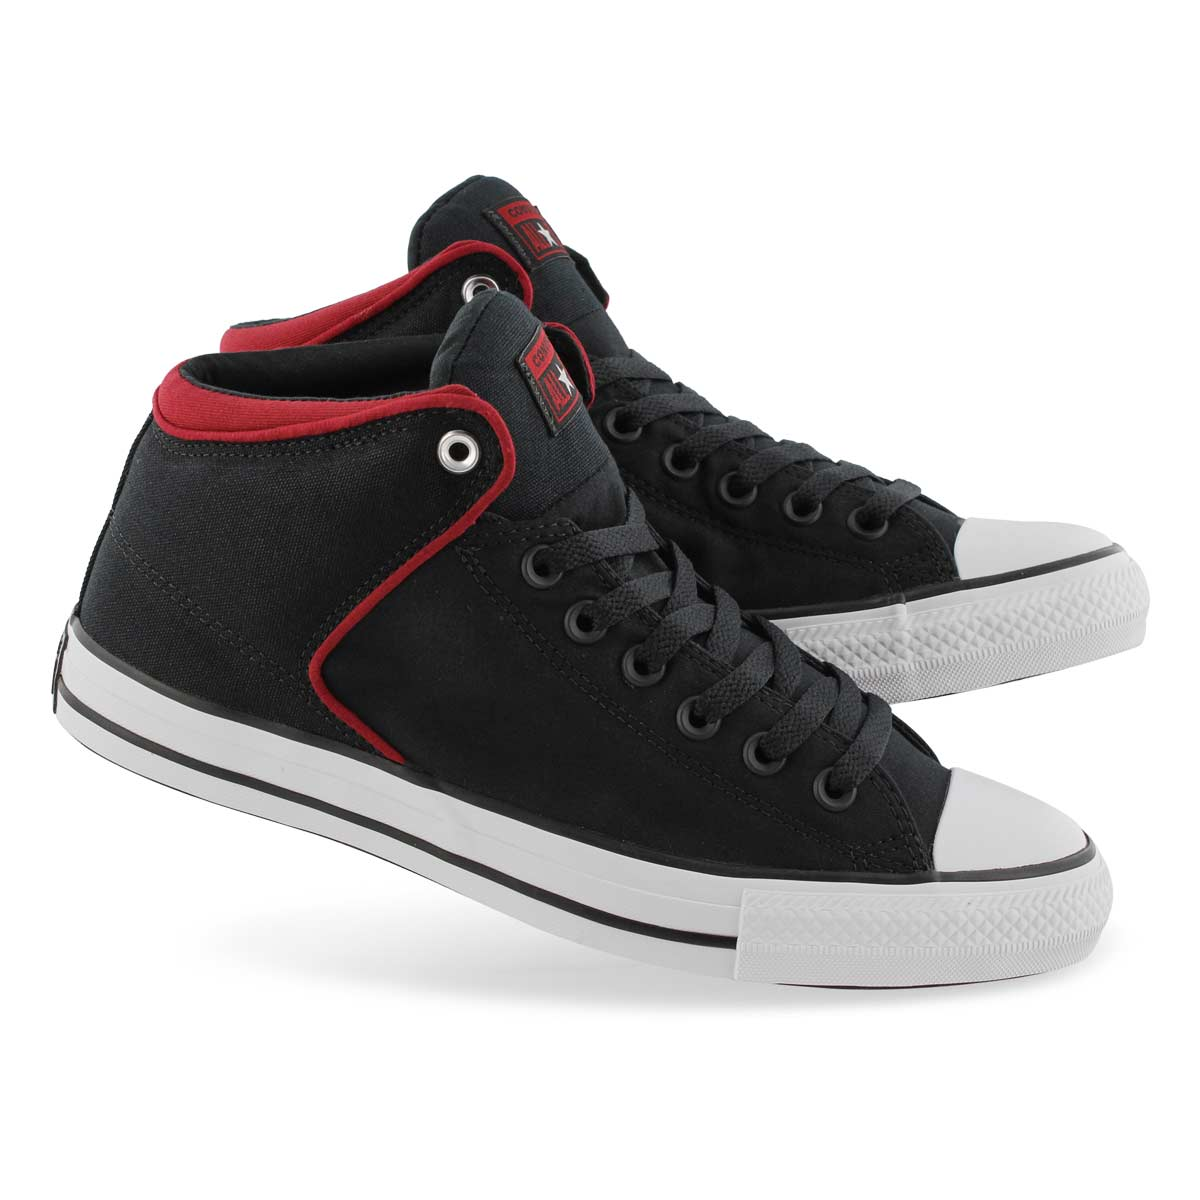 Men's CT ALL STAR STREET MID SPACE EXPLORER shoes